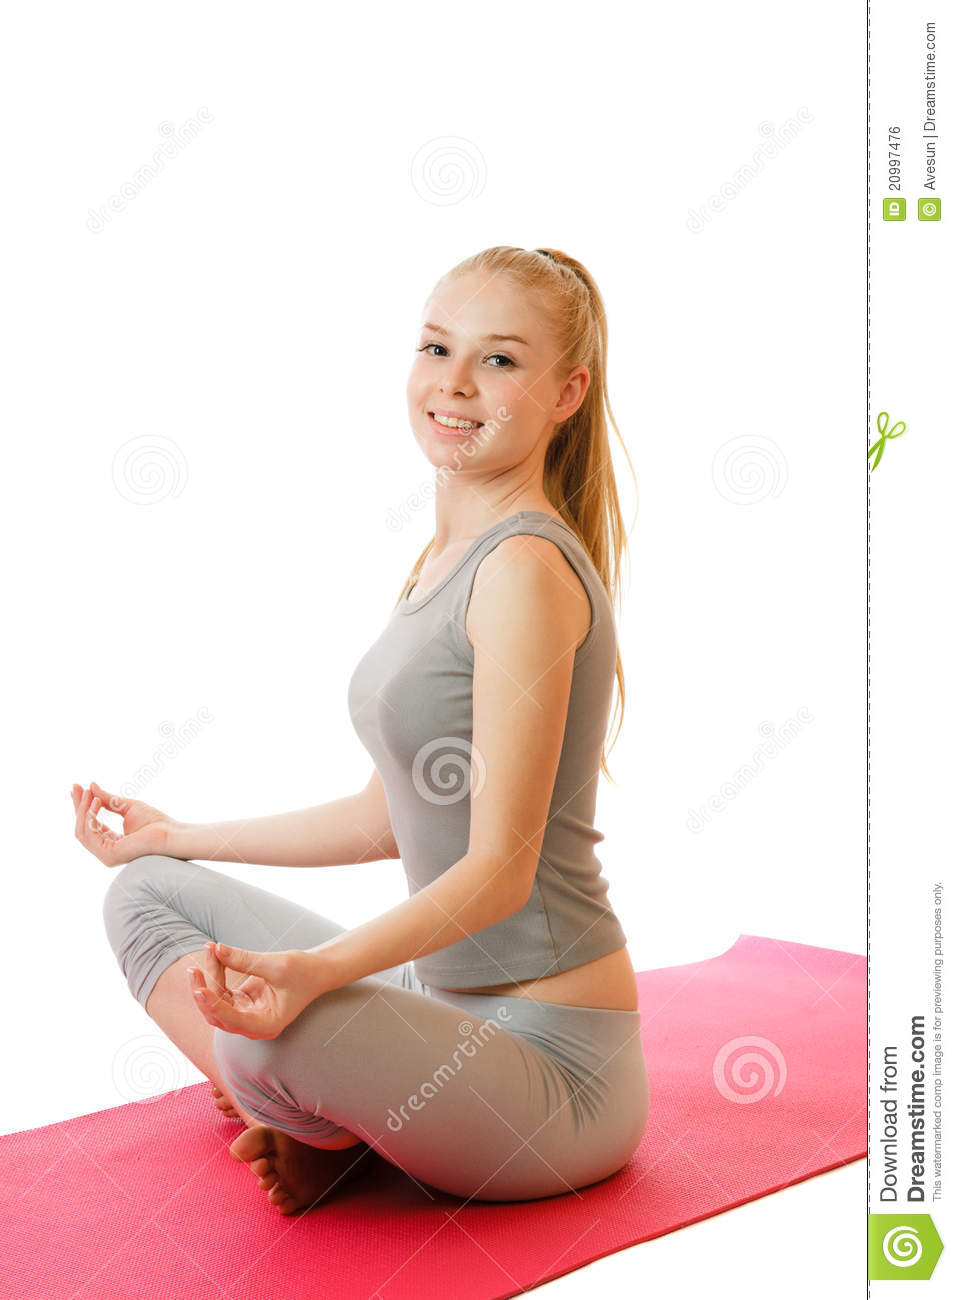 Yoga Girl Stock Photo Image Of Sports, Blond, Lovely -9081